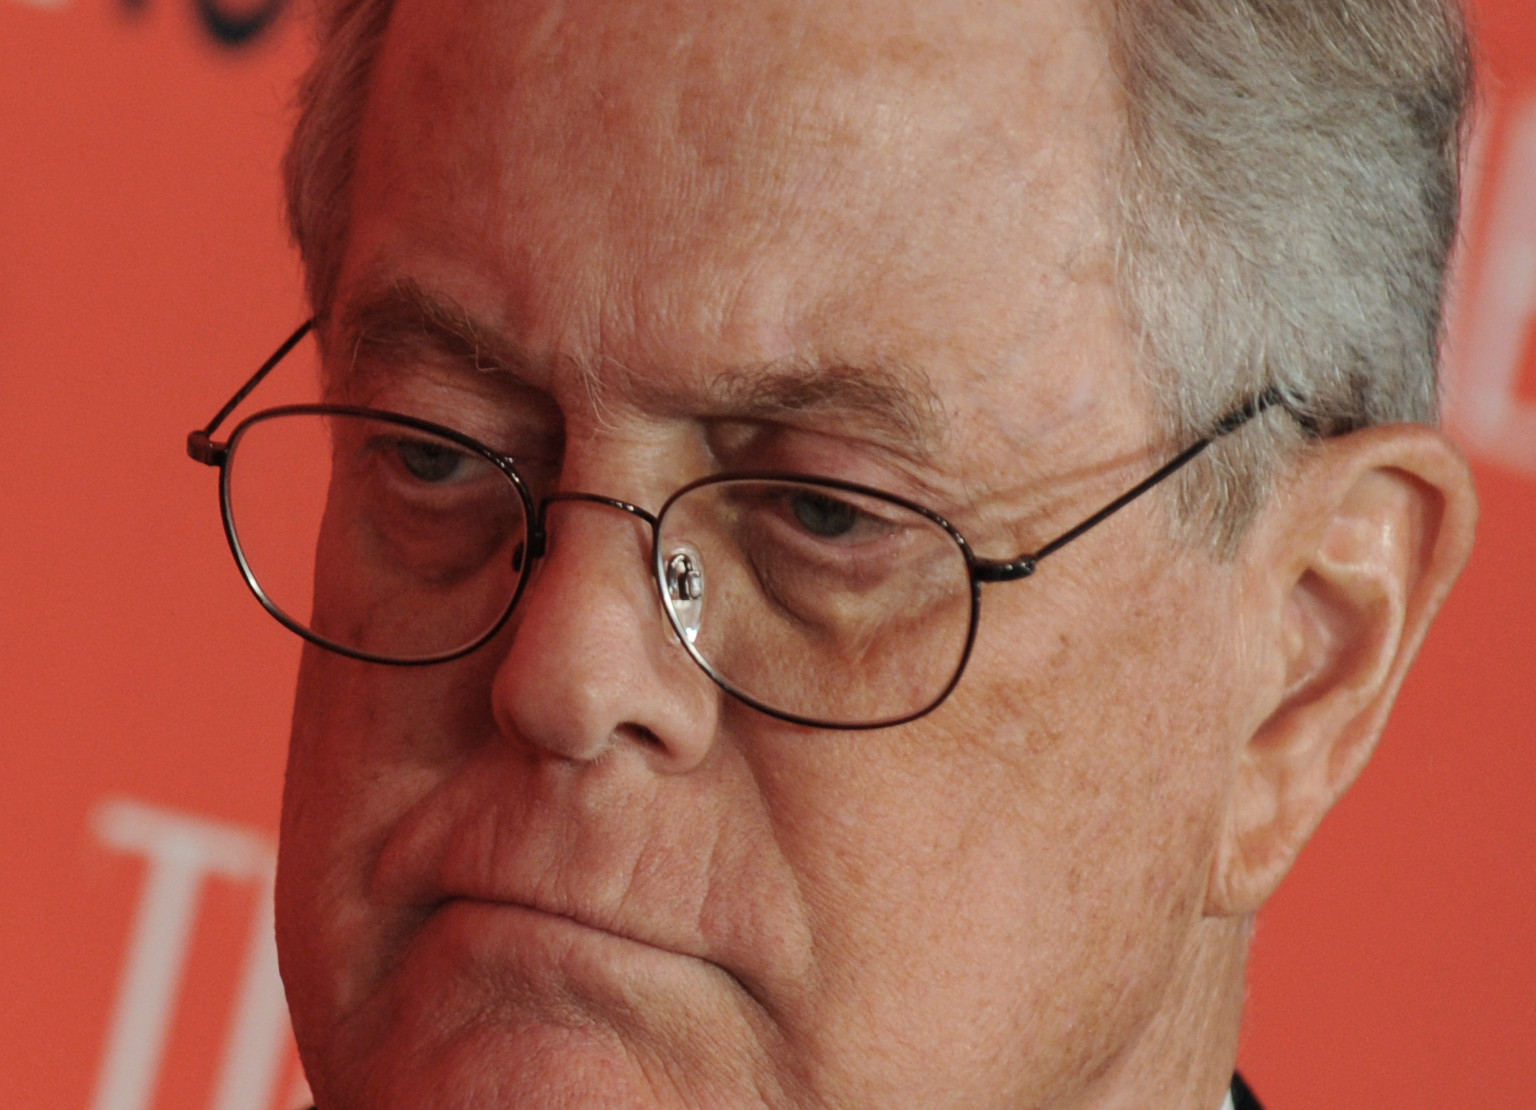 Charles David Koch We Know Who You Are >> Americans For Prosperity Hurl False Assumptions On Obamacare | HuffPost